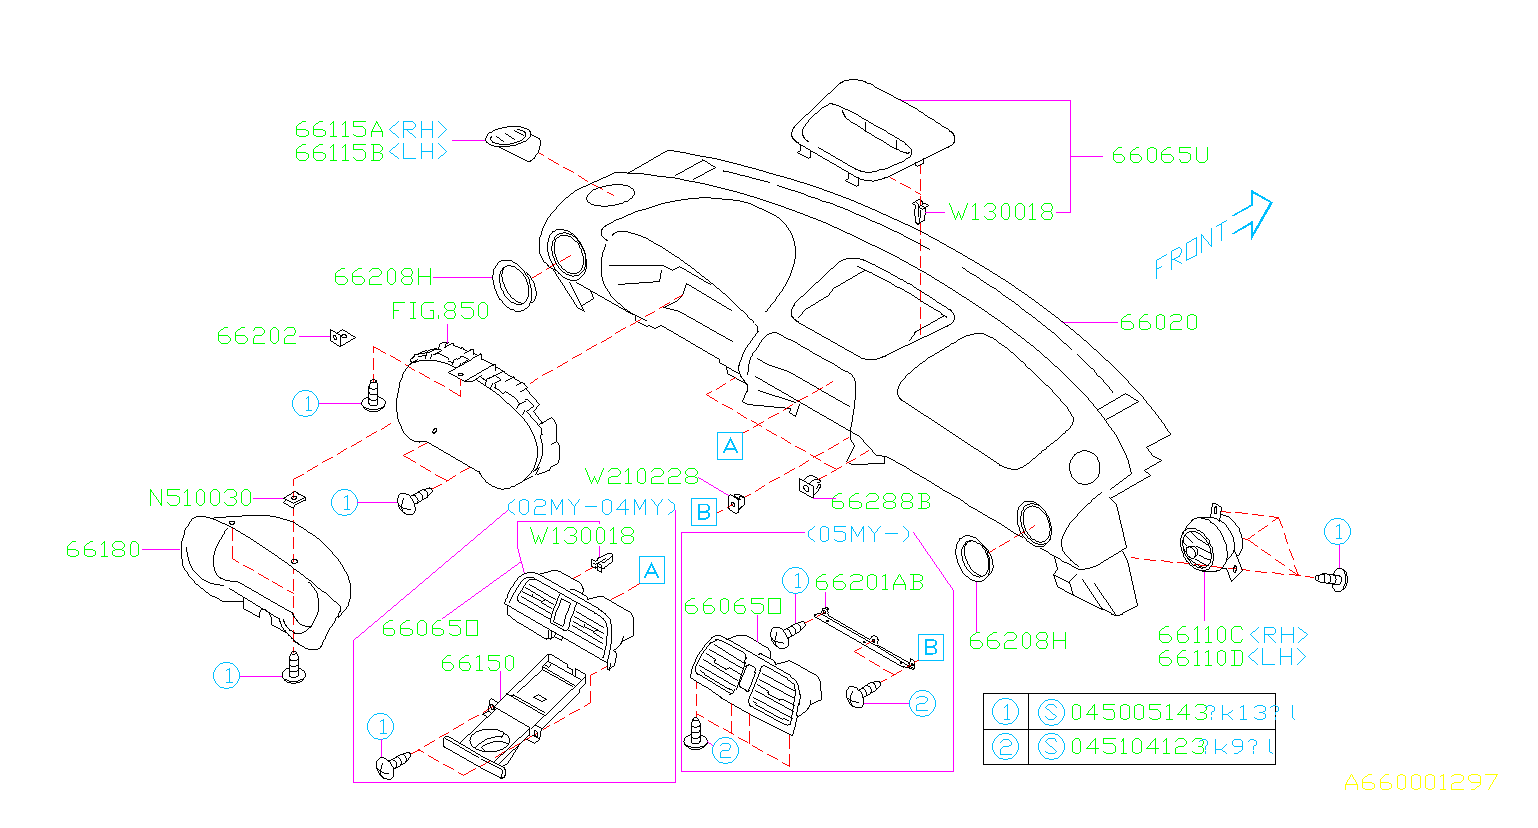 Diagram INSTRUMENT PANEL. UPPER. for your 2003 Subaru Impreza (205) 5MT 4WD WRX Wagon